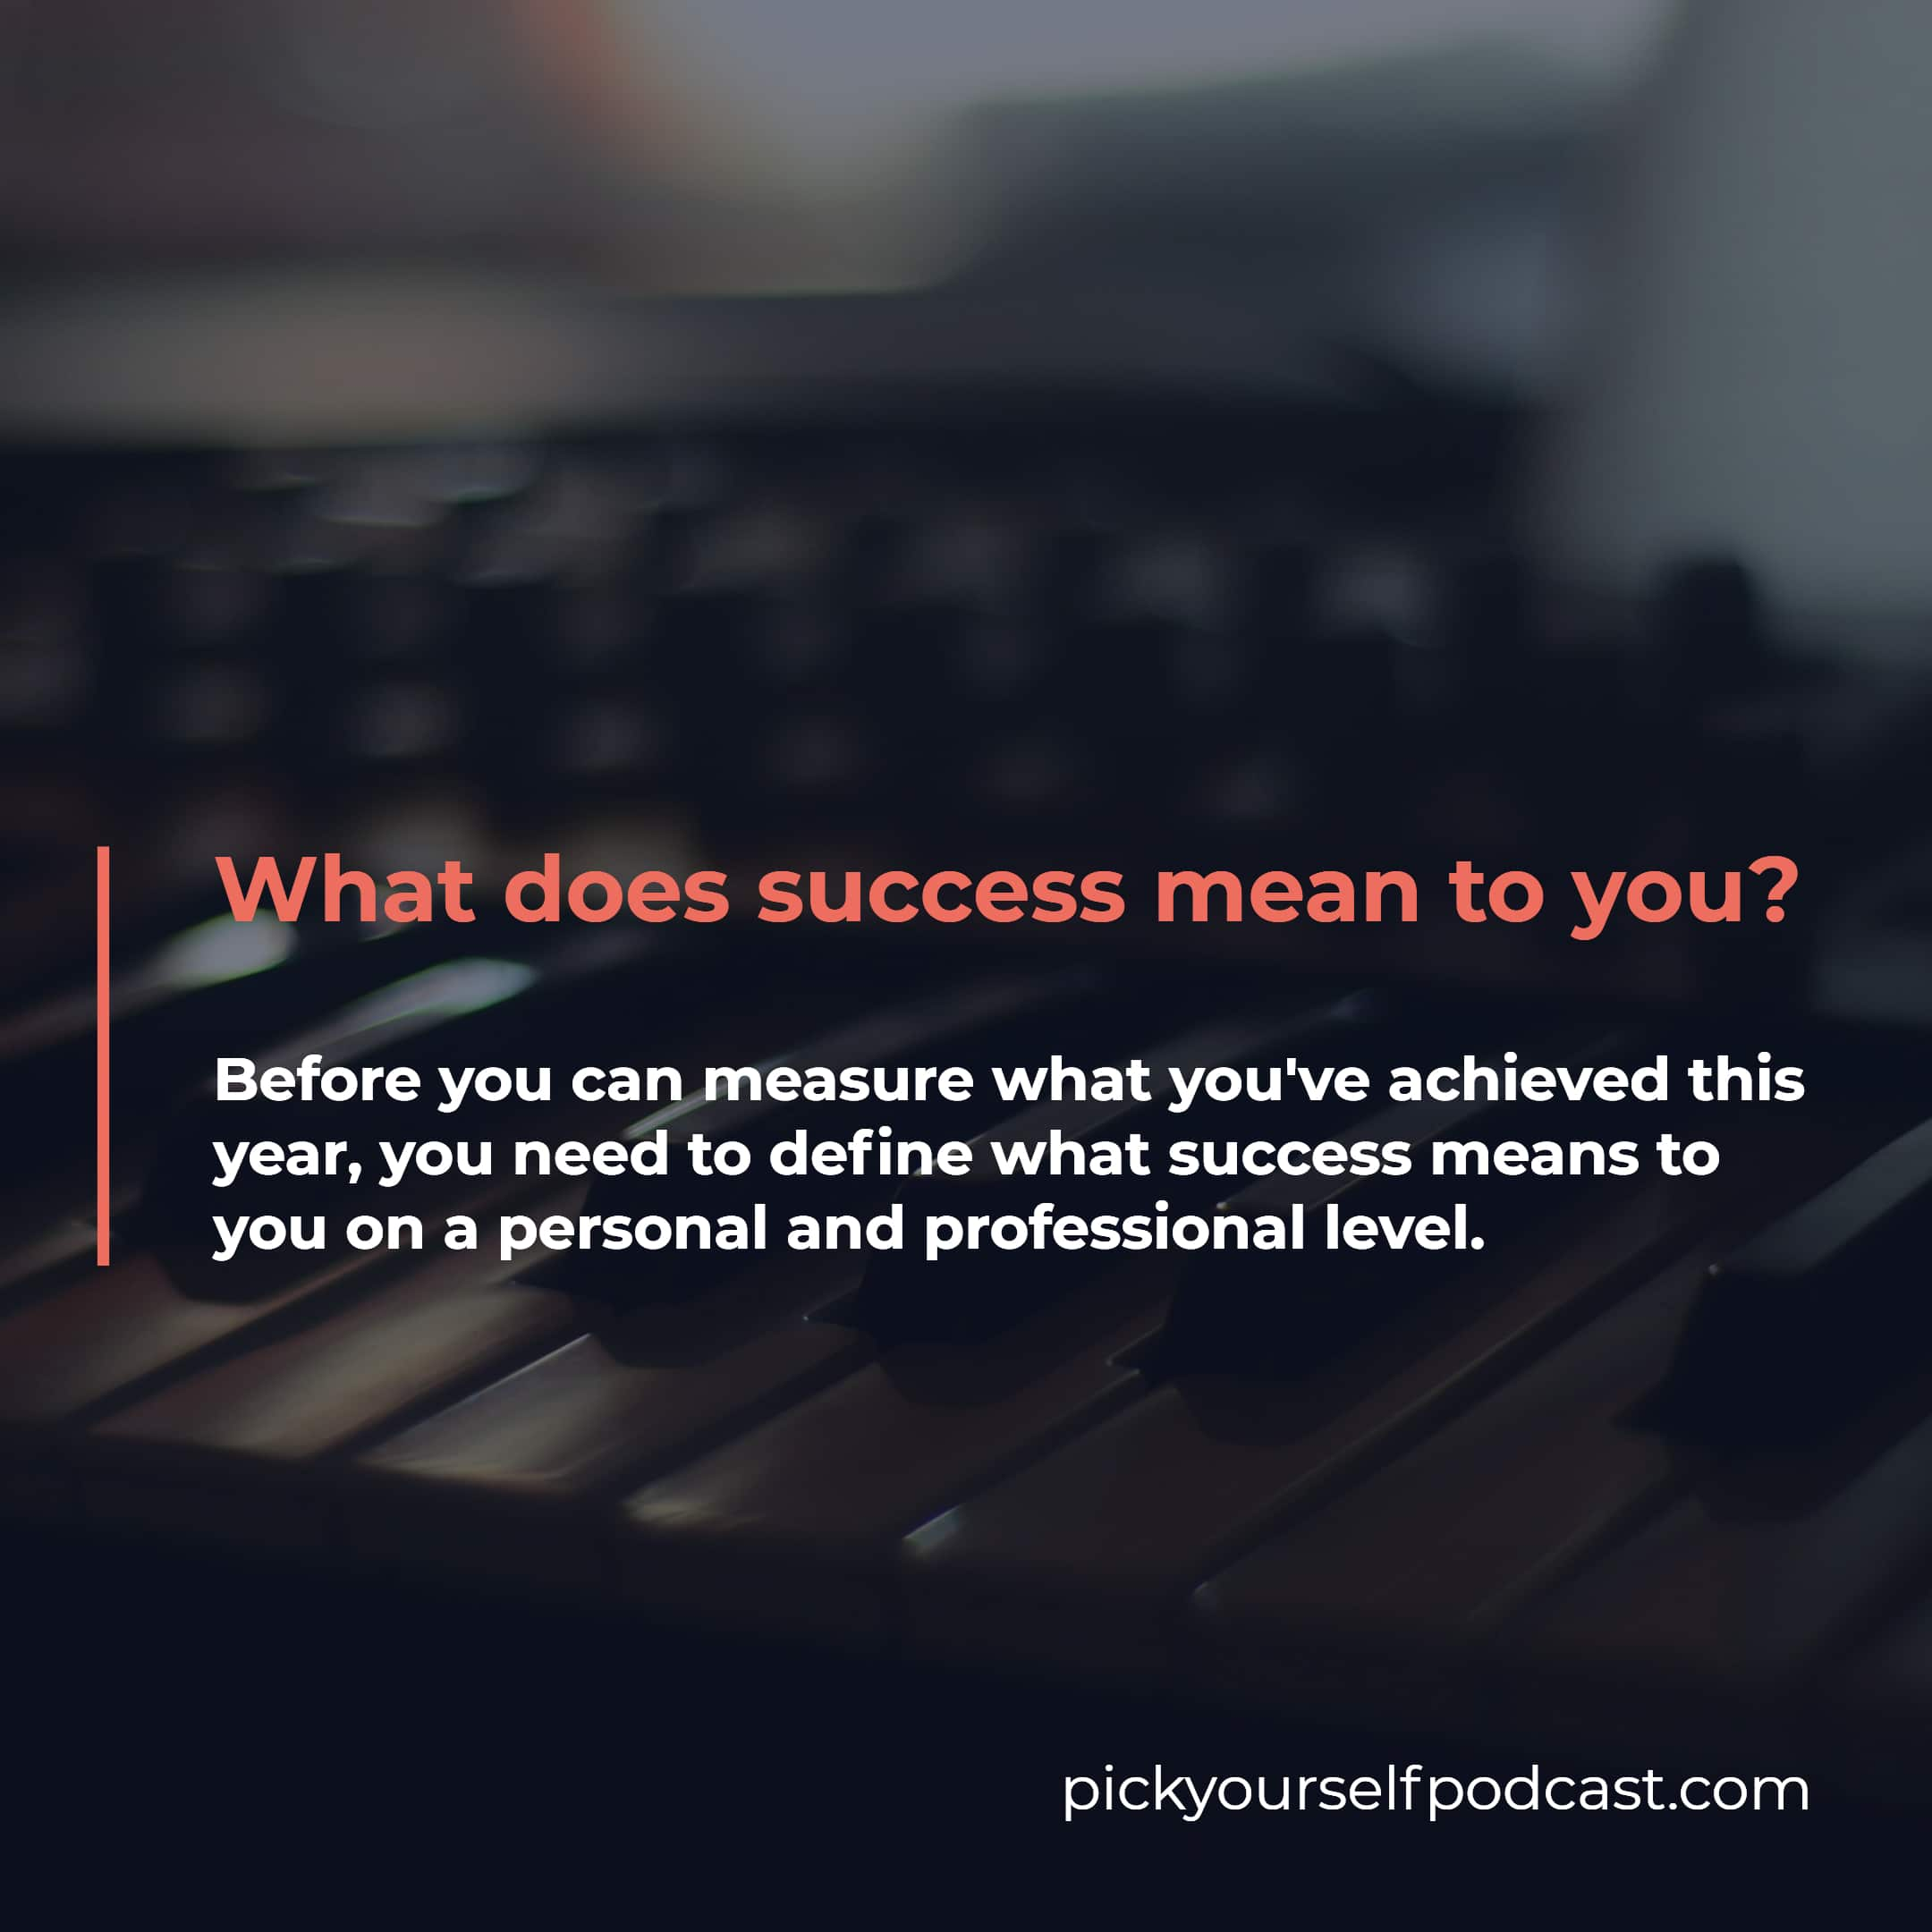 Measuring Success as an Electronic Music Producer or DJ visual 1. It says: What does success mean to you?